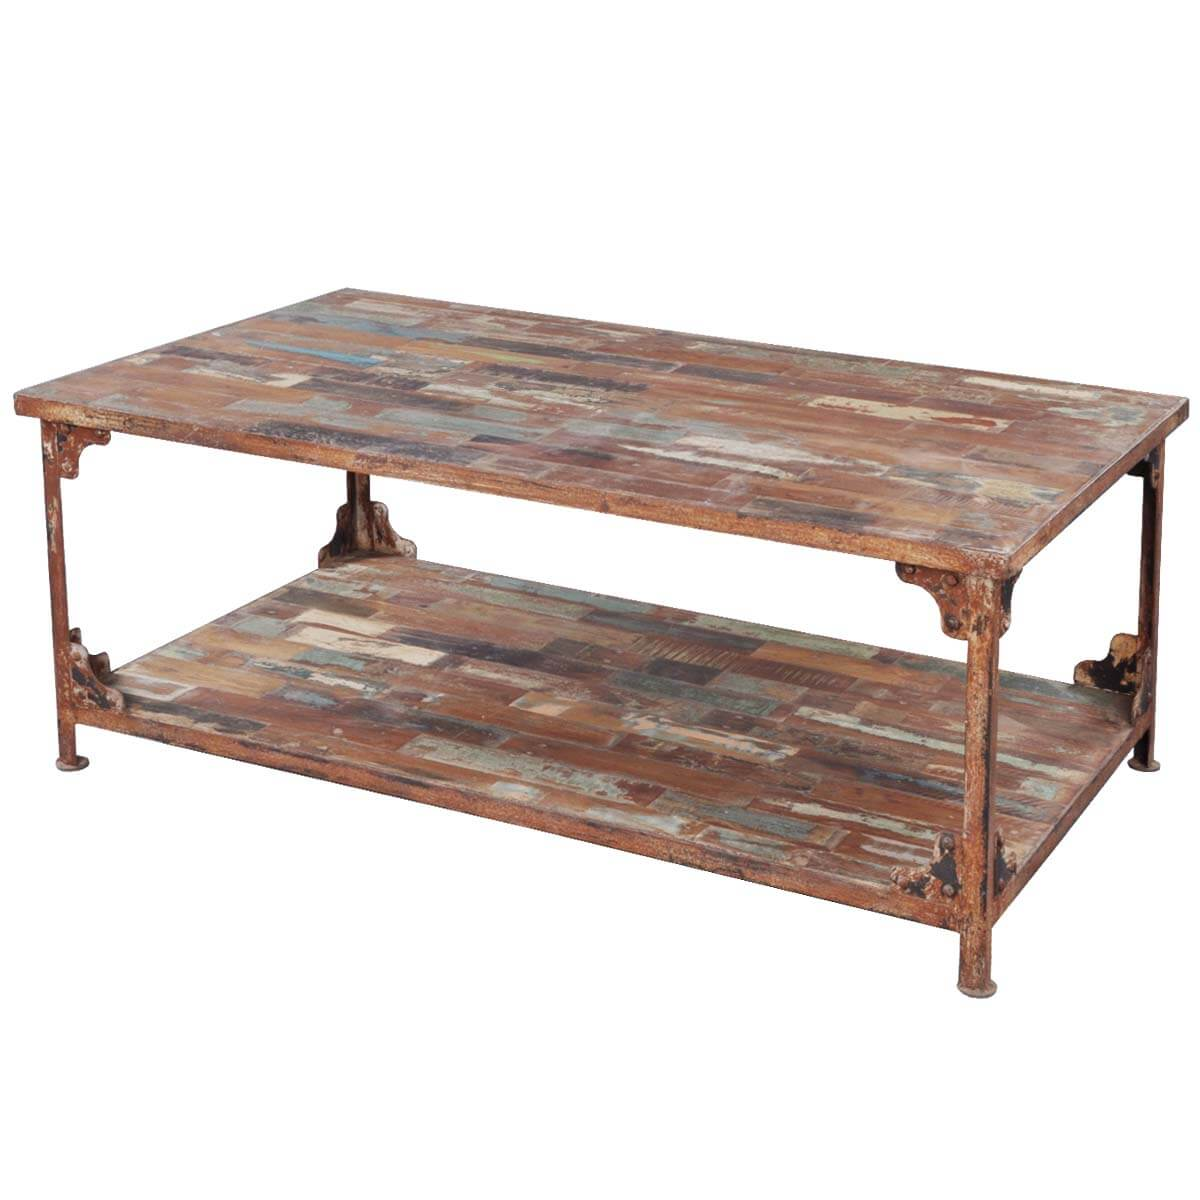 Distressed Reclaimed Wood Industrial Wrought Iron Rustic